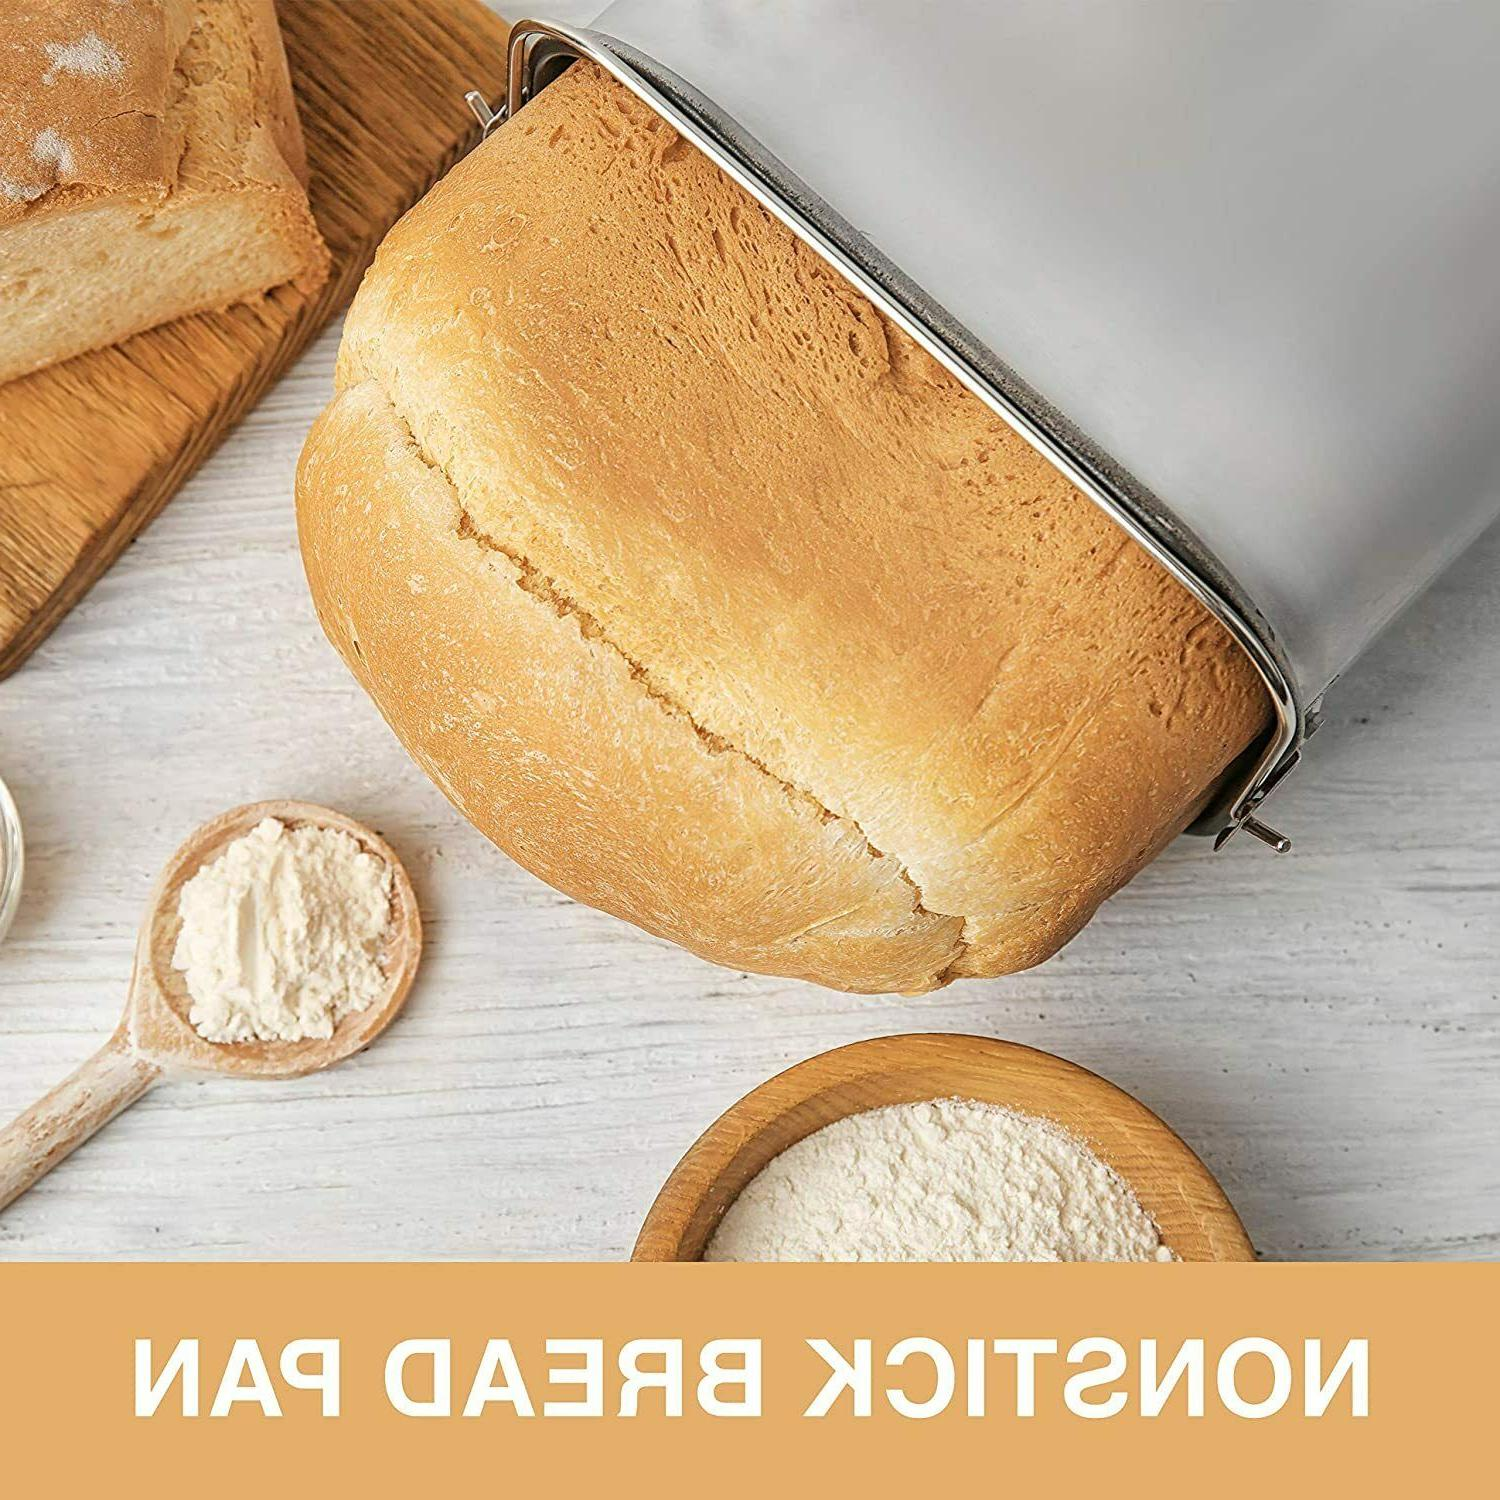 Stainless Machine Bread 2LB